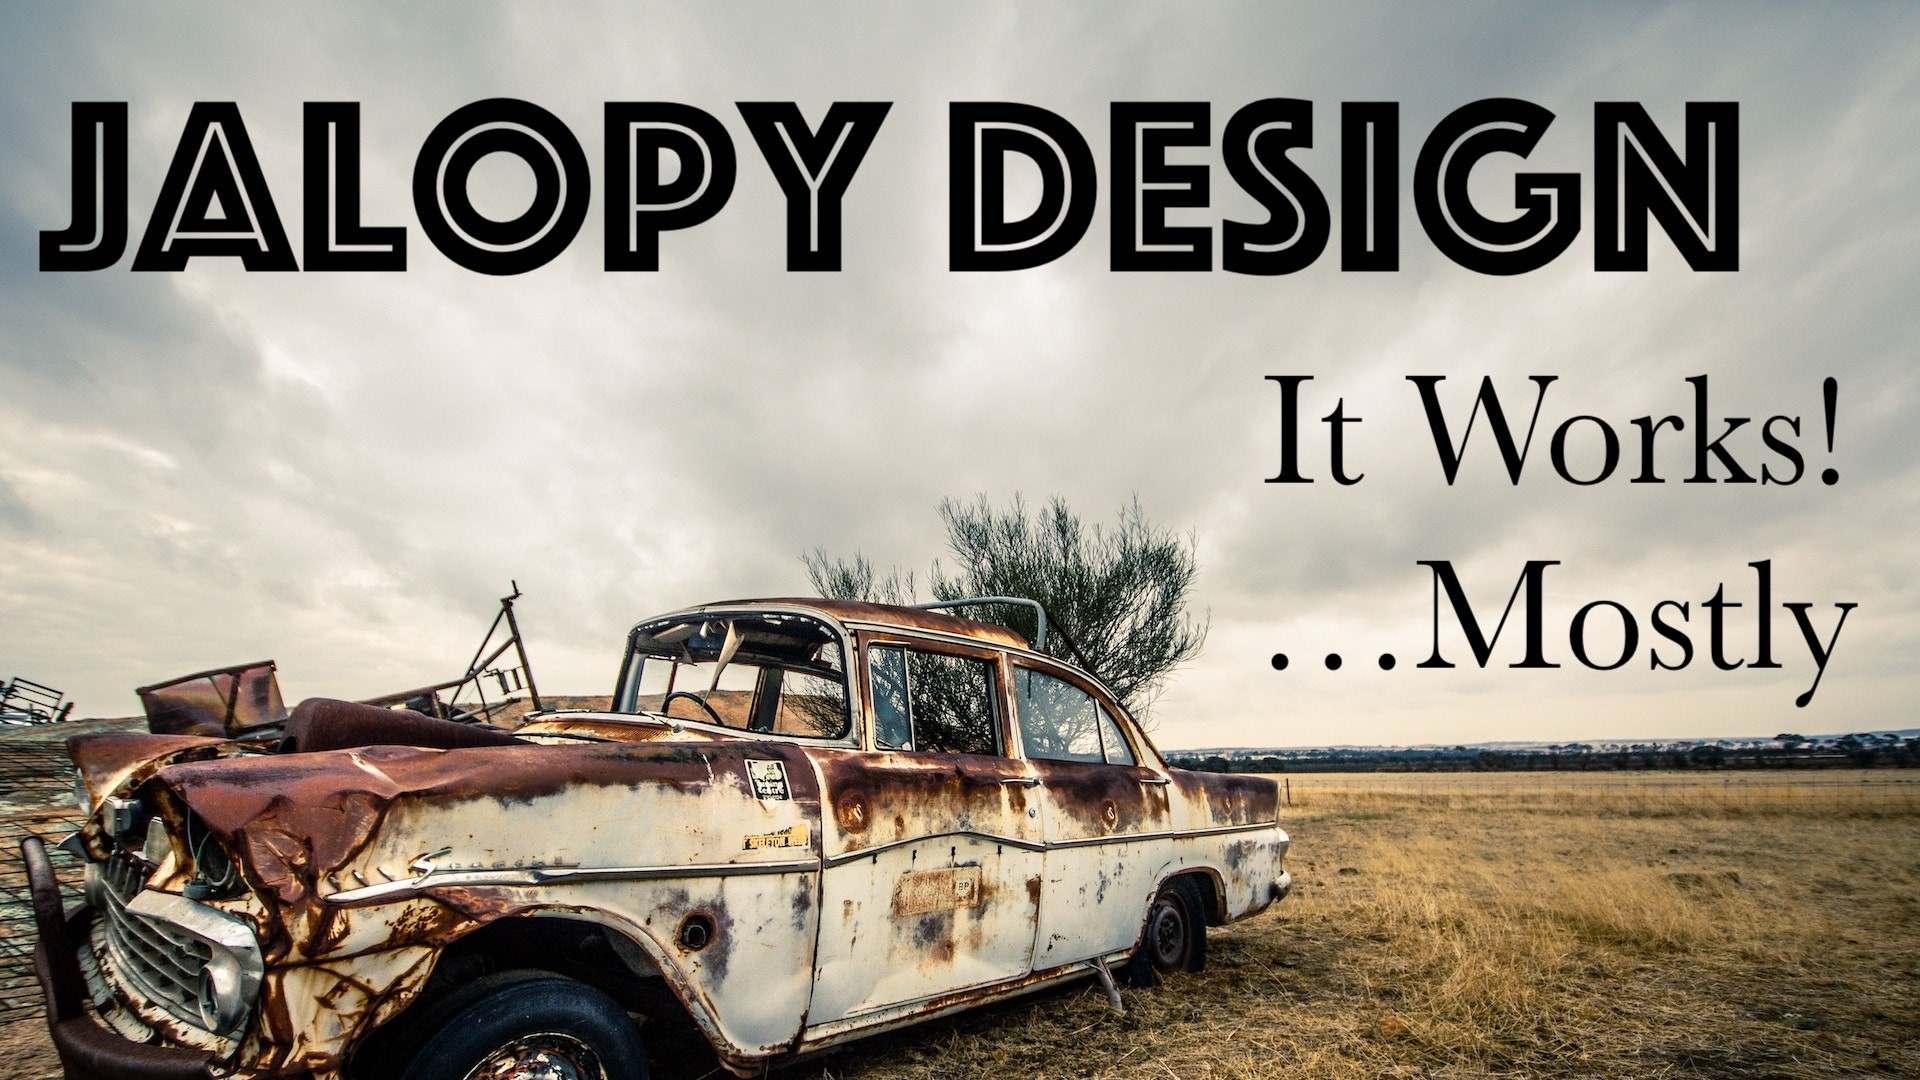 Jalopy Design: Making a Zine